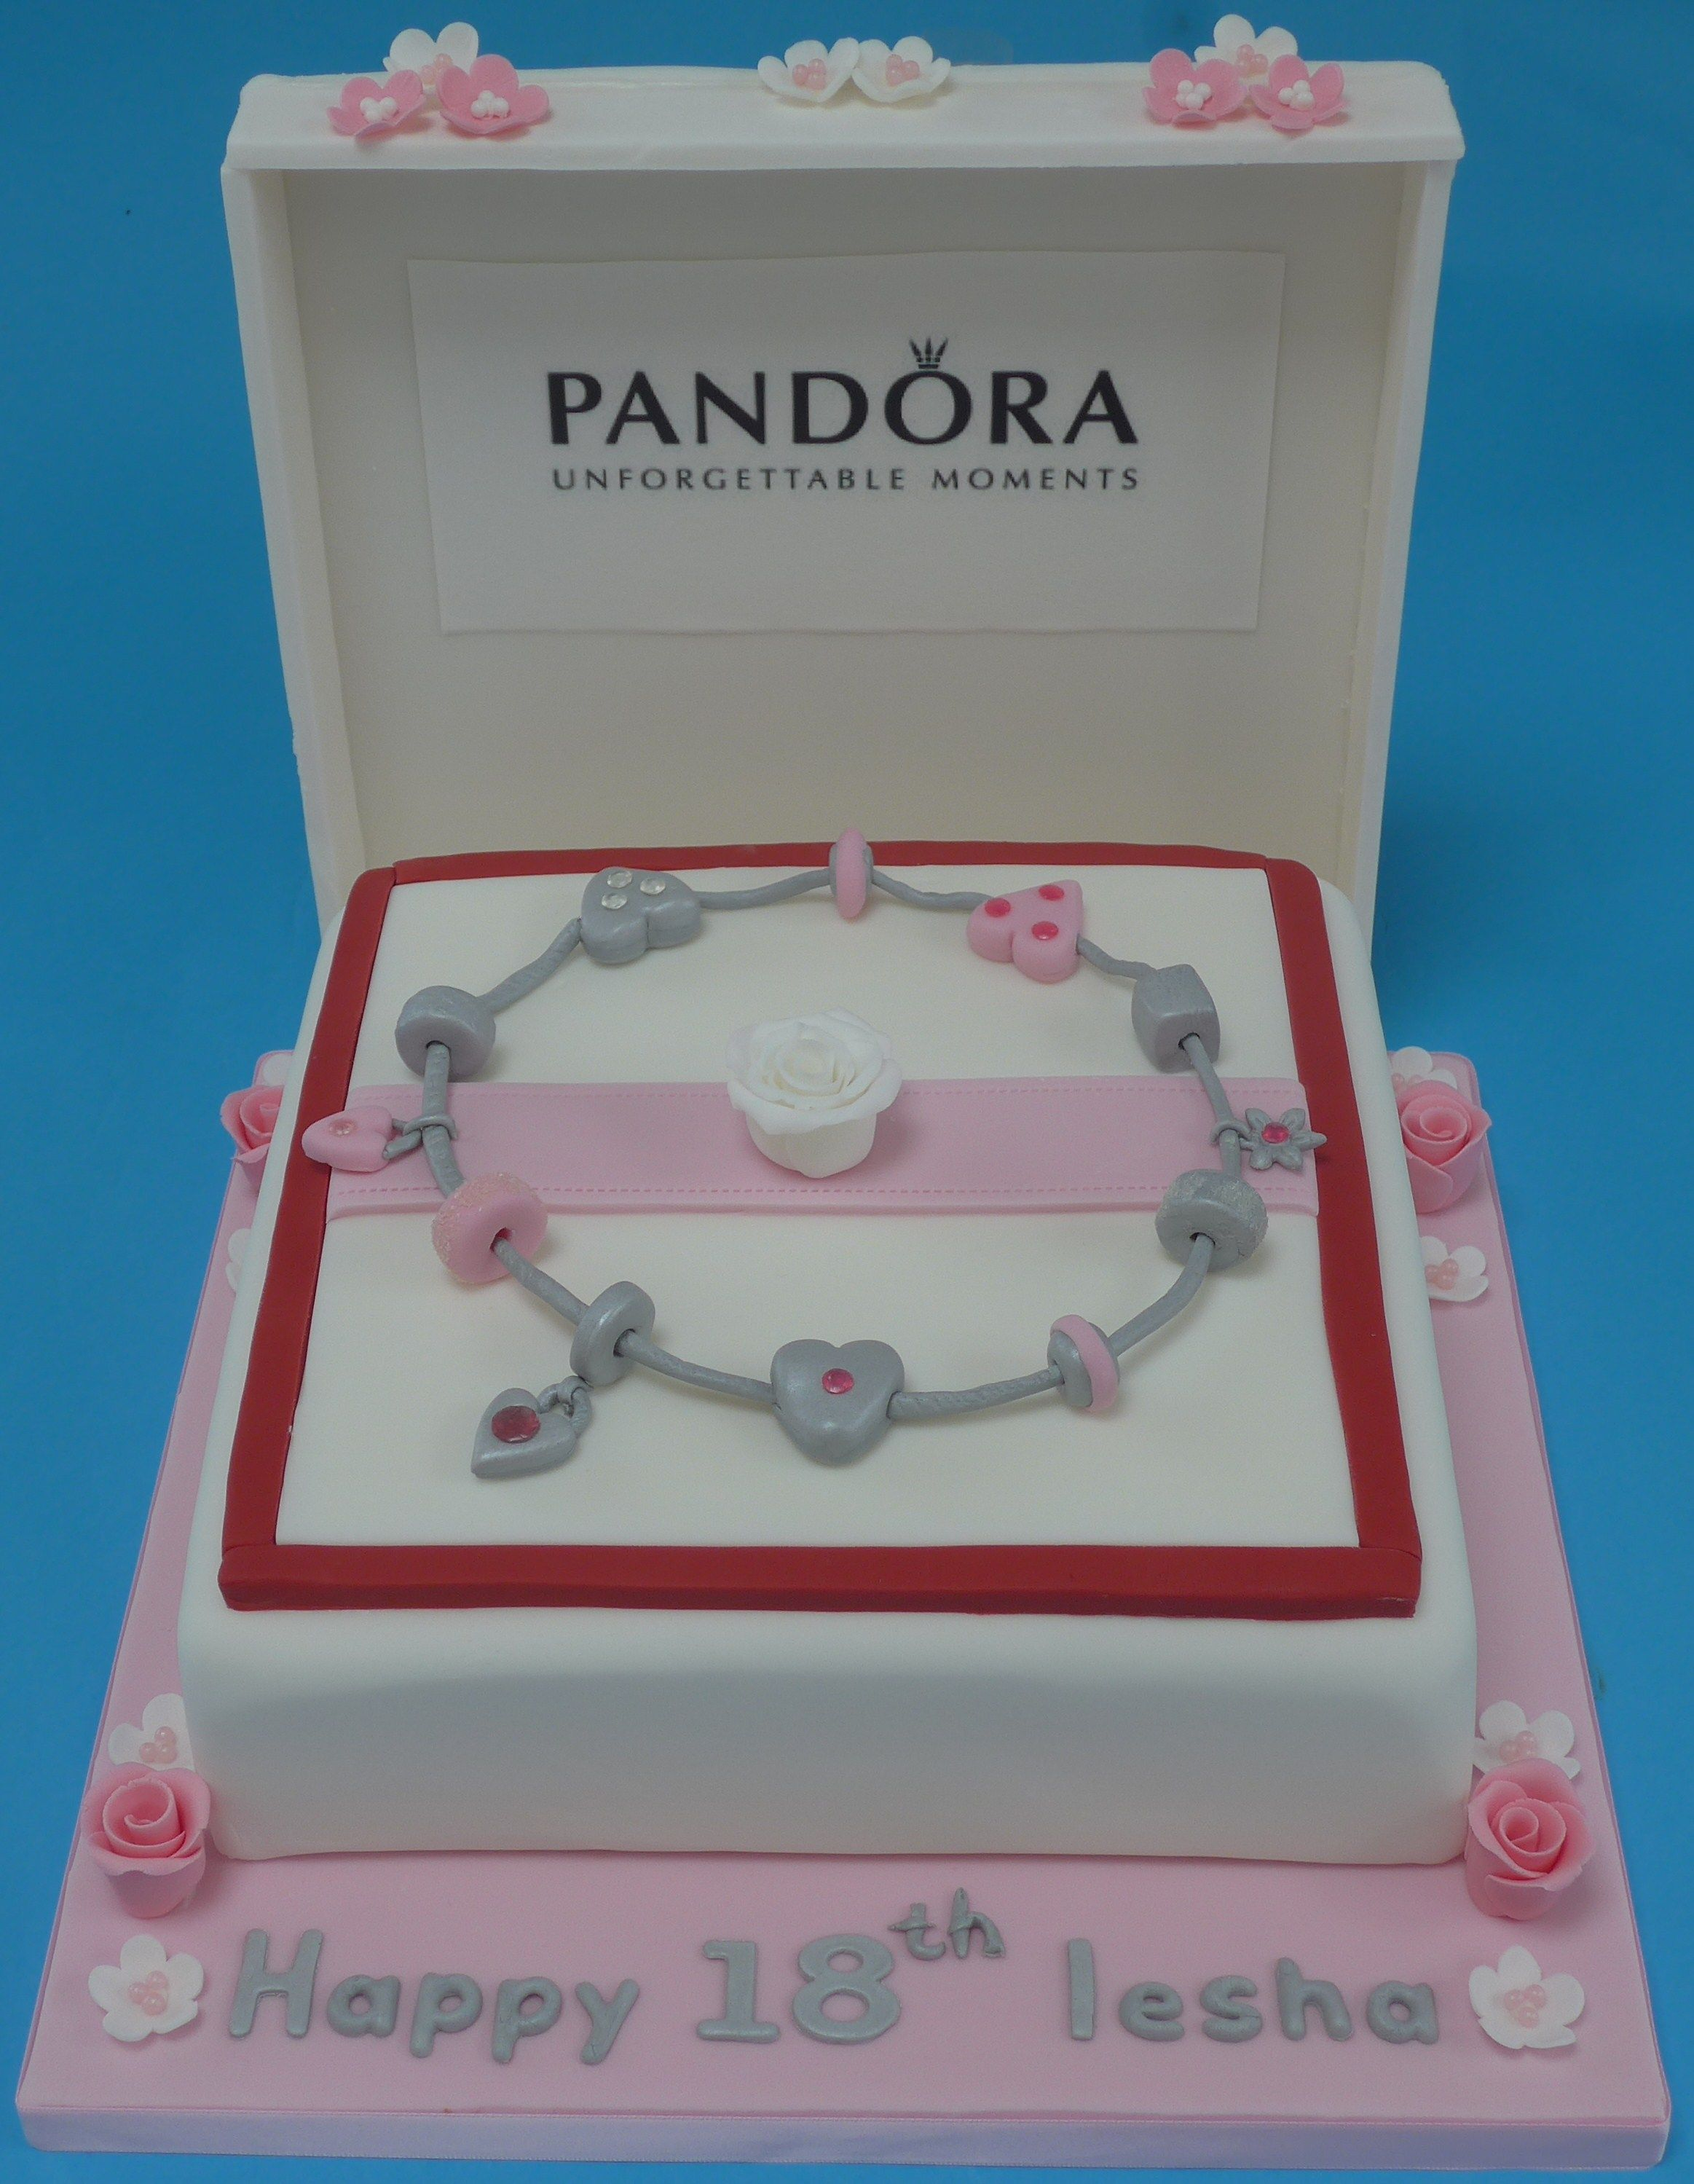 A Pandora charm bracelet cake vanilla sponge covered with